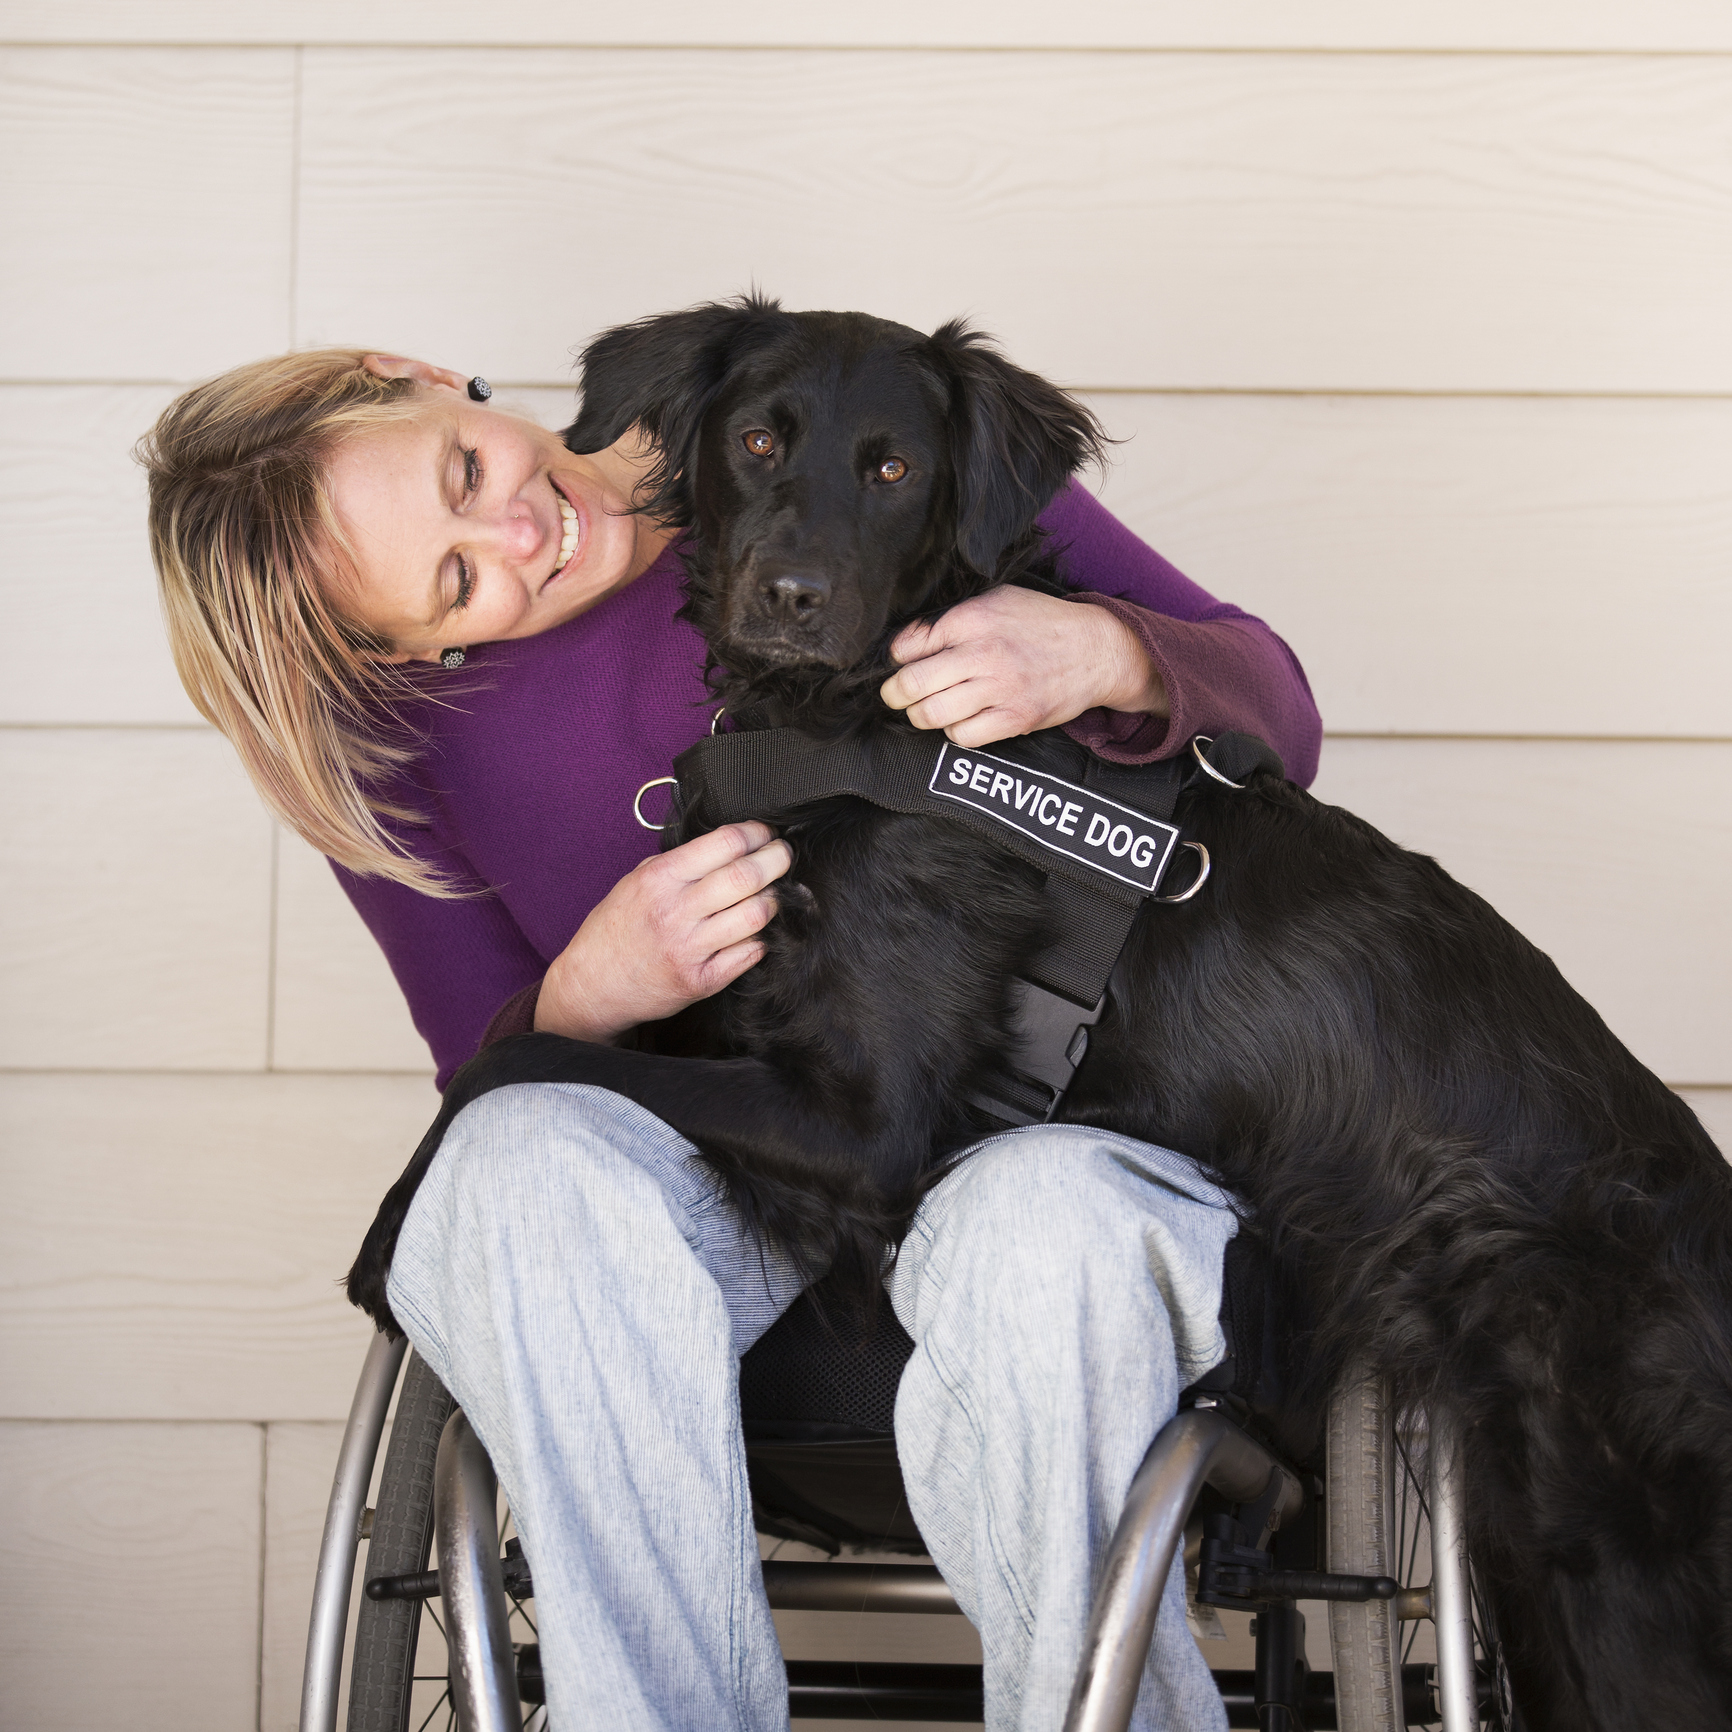 Wheelchair user with service dog